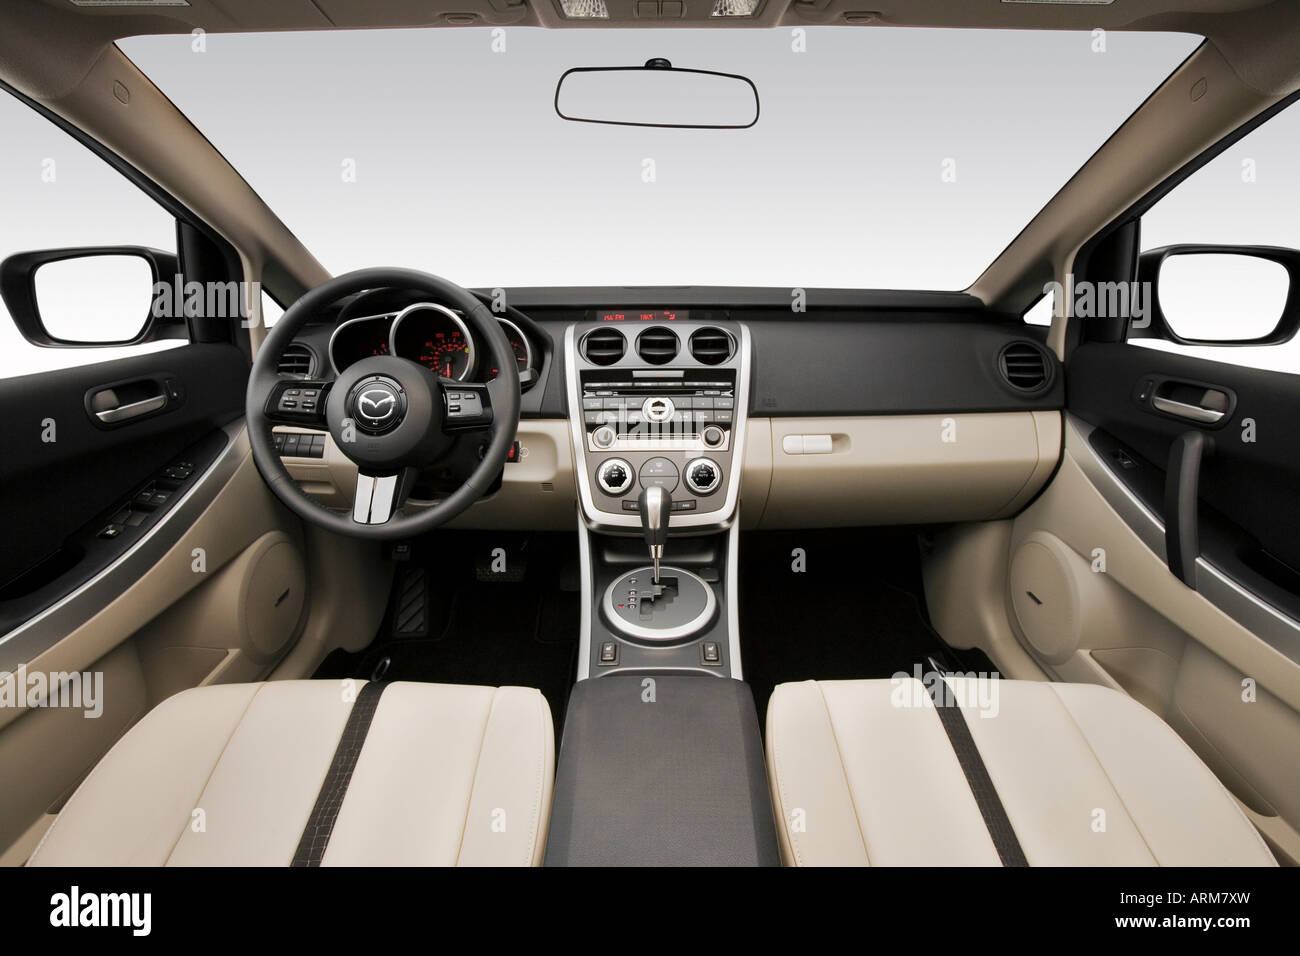 hight resolution of 2008 mazda cx 7 grand touring in silver dashboard center console gear shifter view